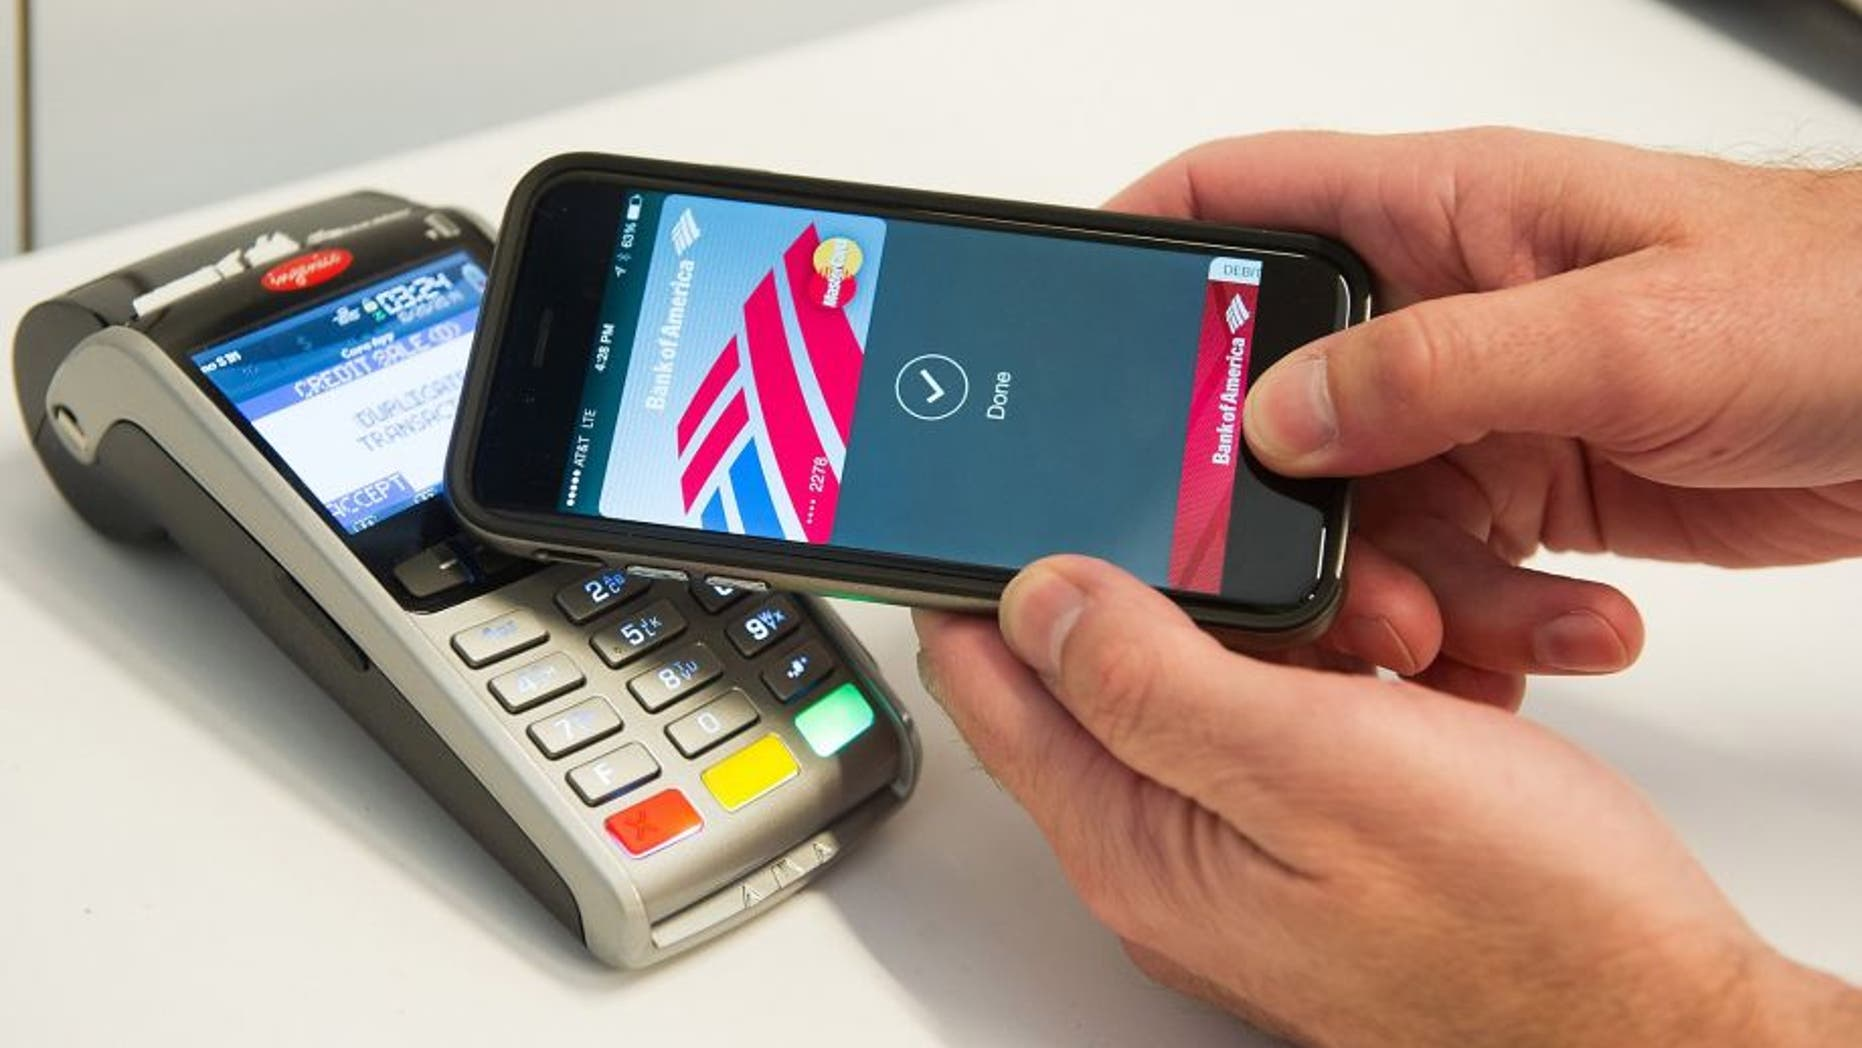 An Apple Pay user demonstrates how to pay via cell phone.